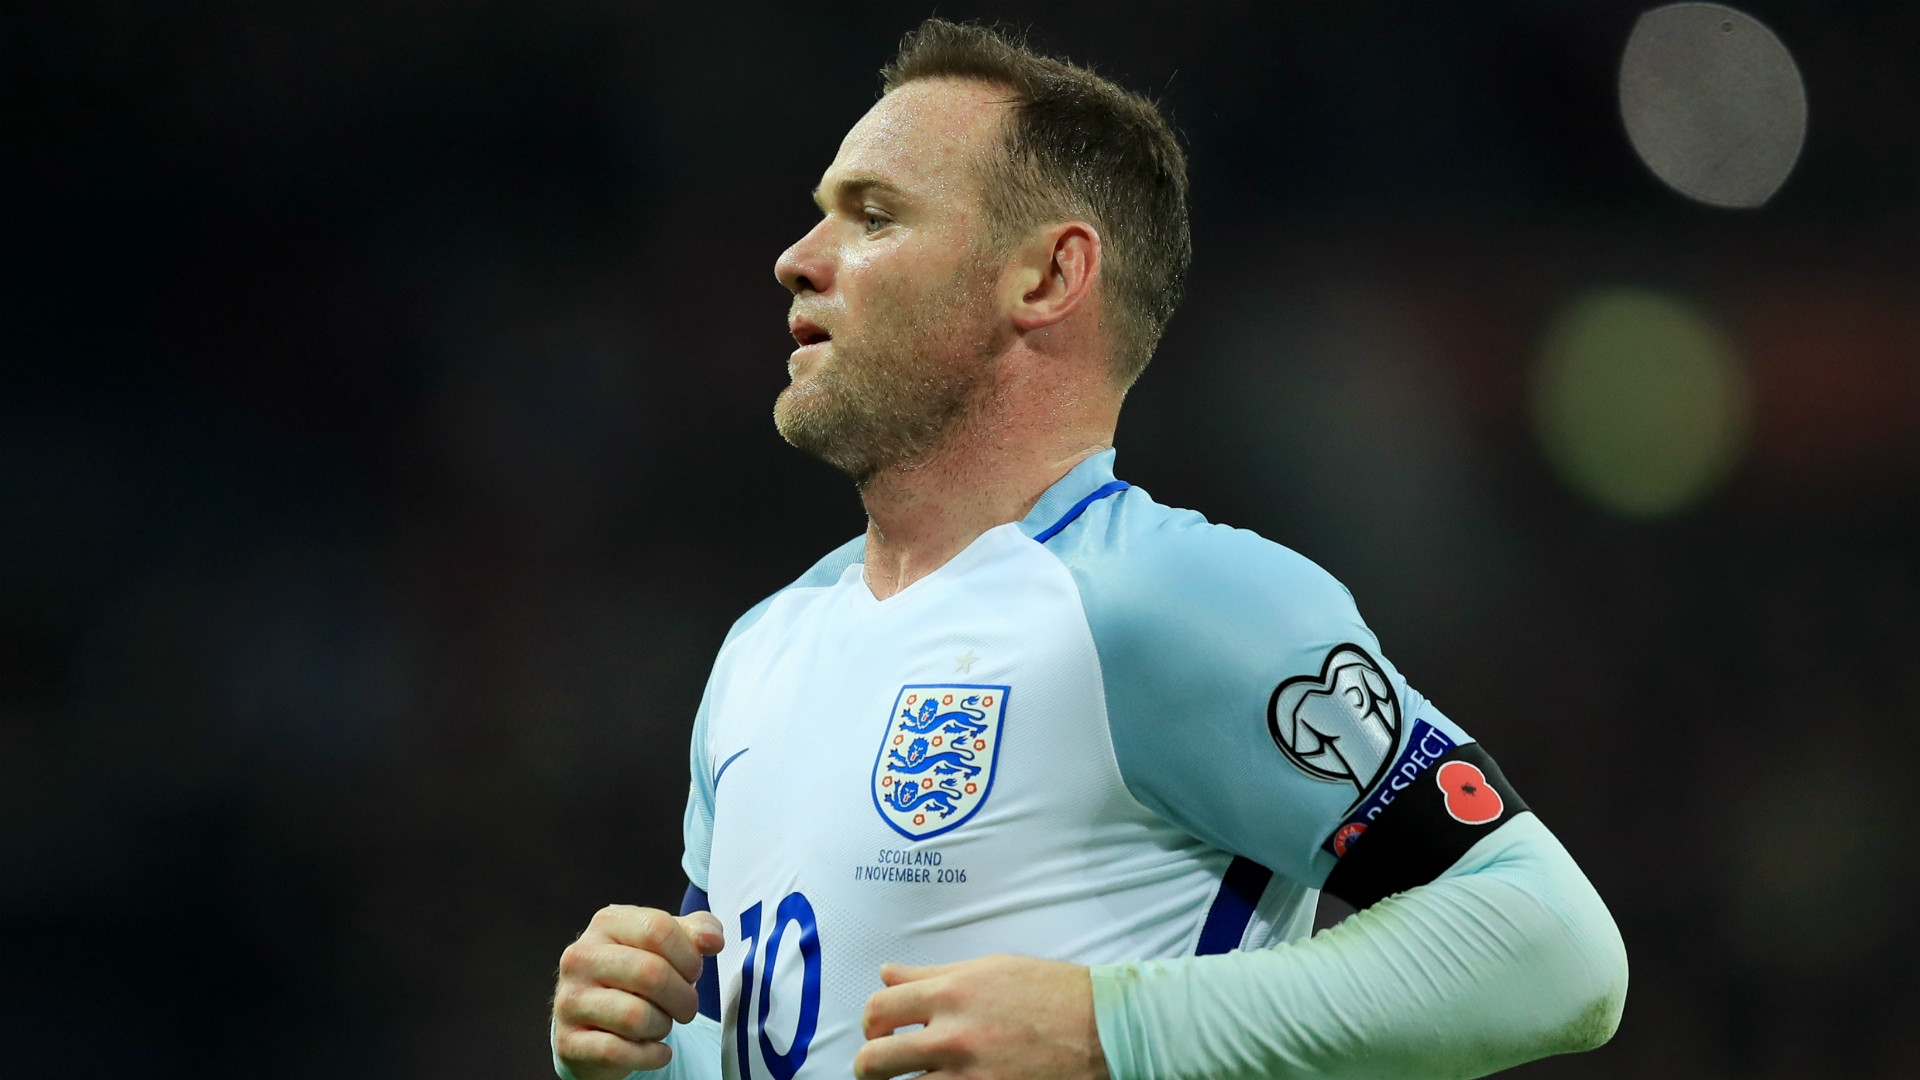 Wayne Rooney is anxious to have more playing time and continue run as England captain